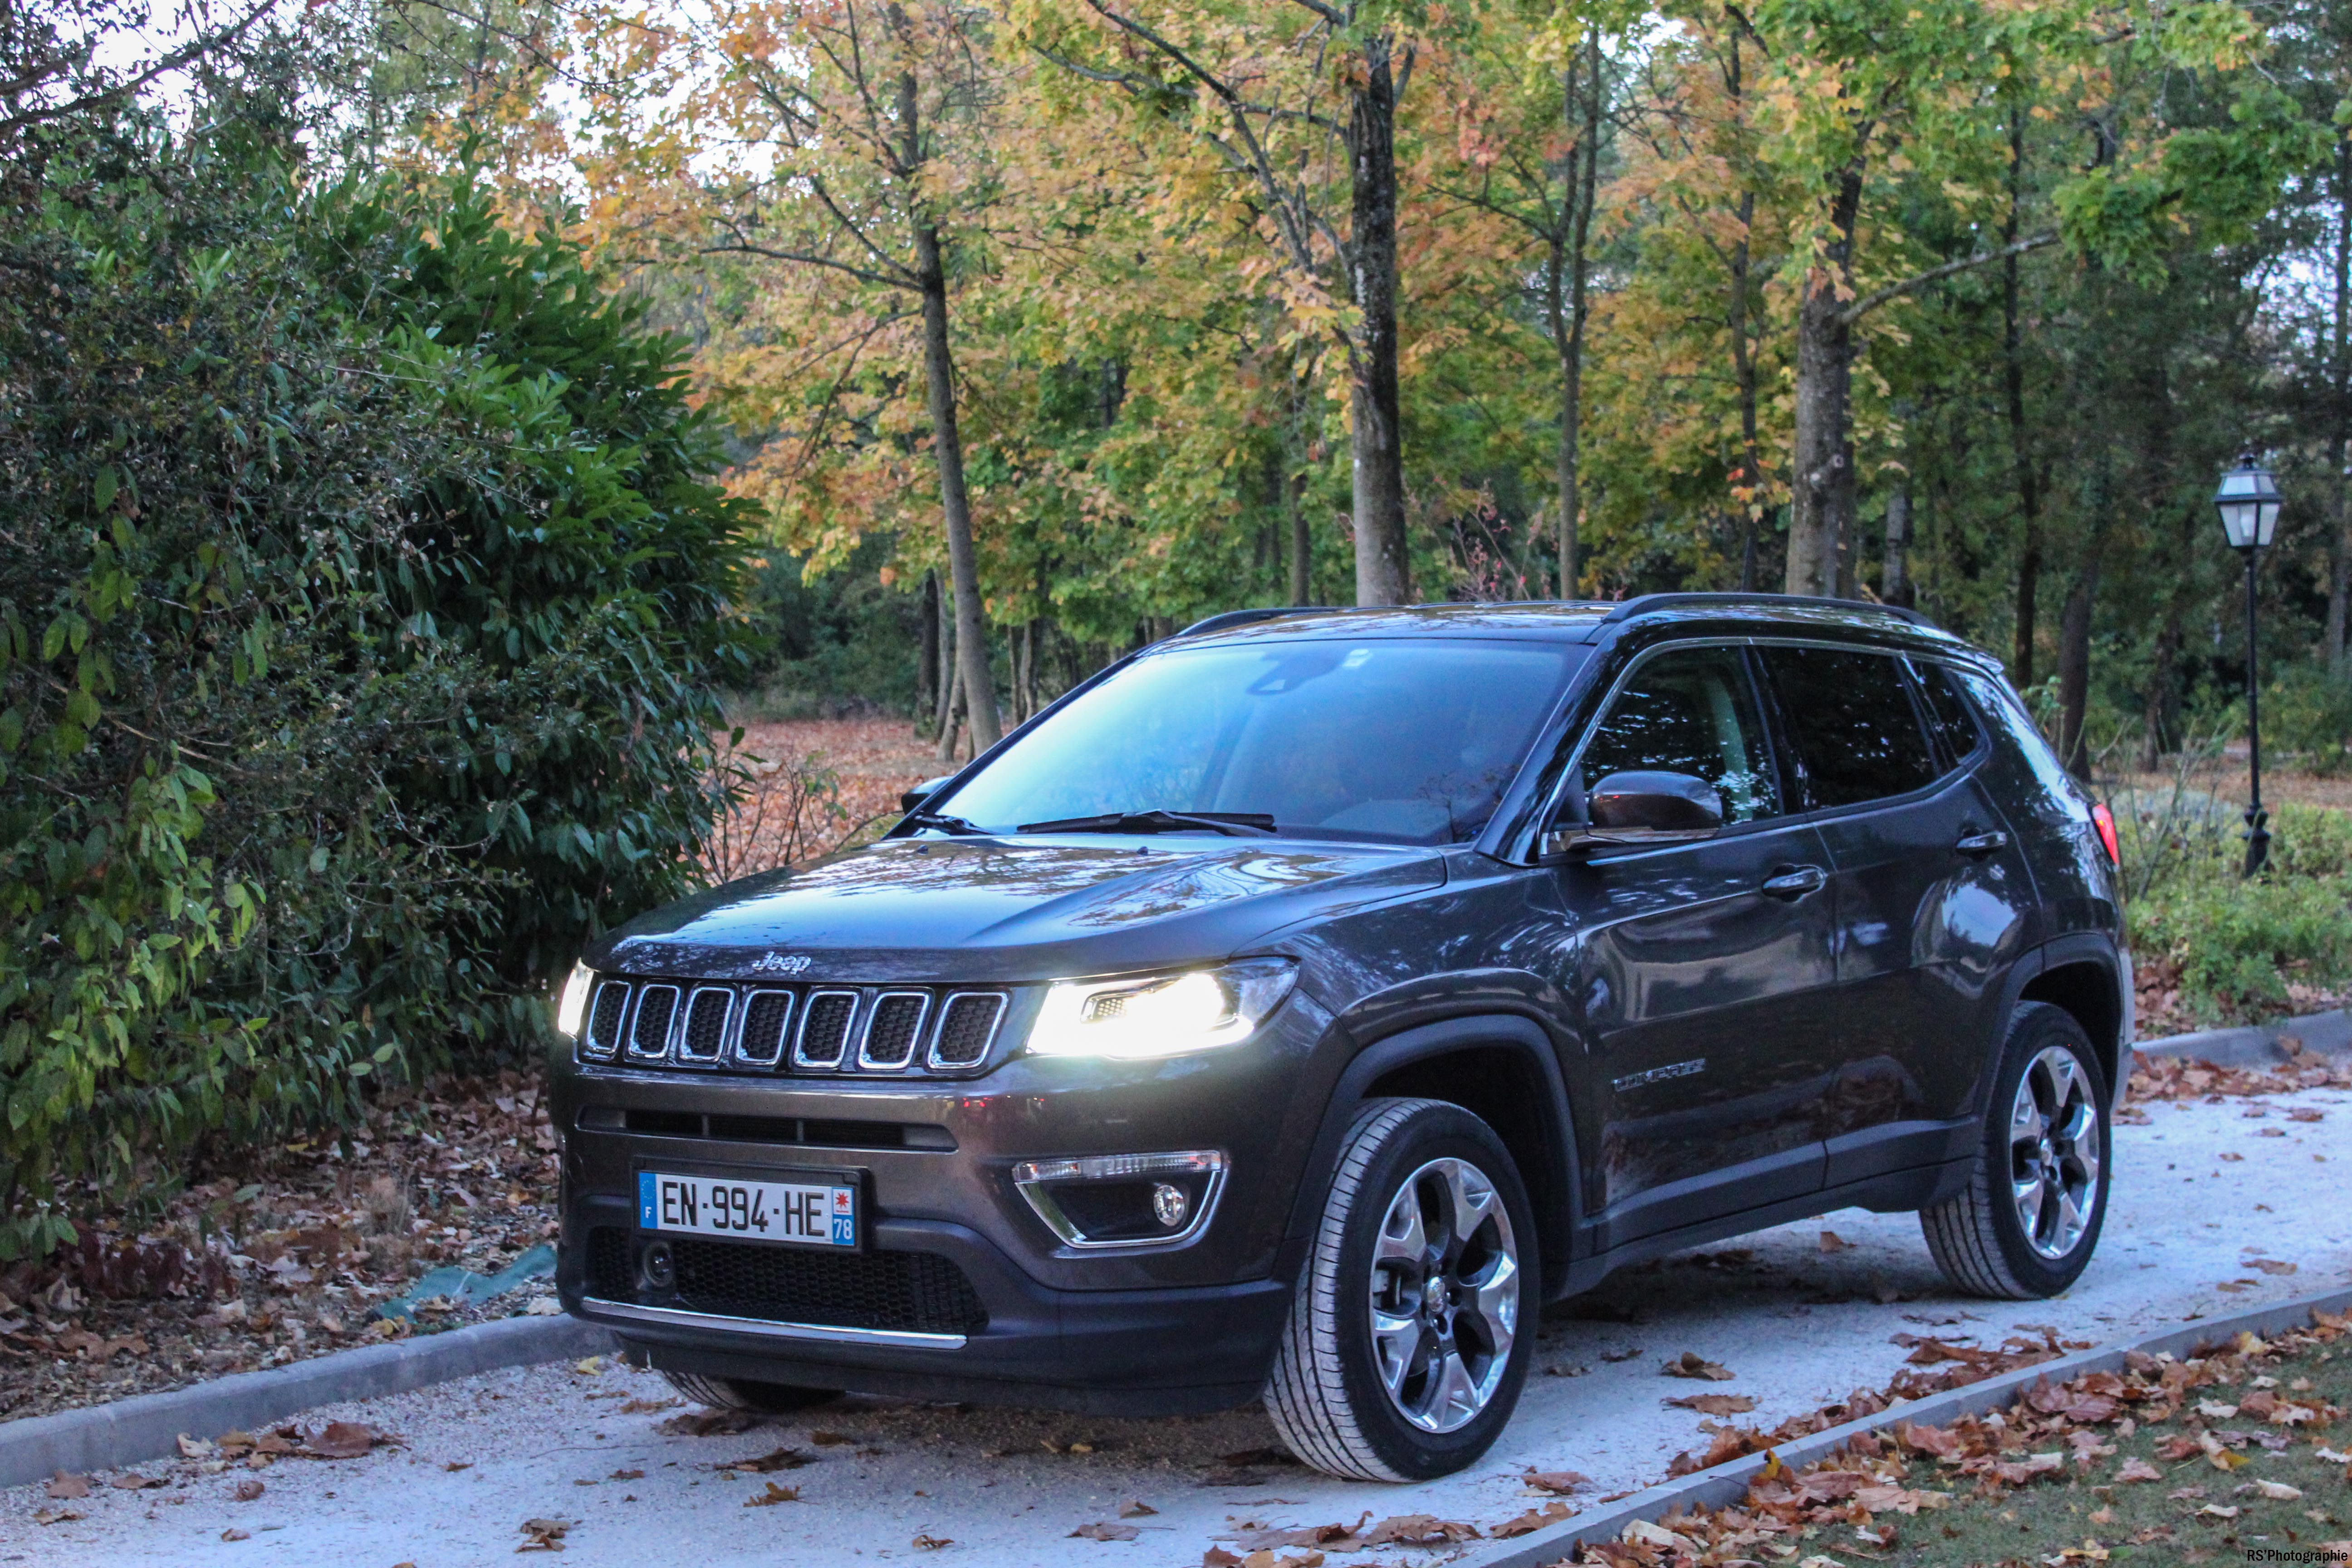 jeepcompass75-jeep-compass-avant-front-Arnaud Demasier-RSPhotographie